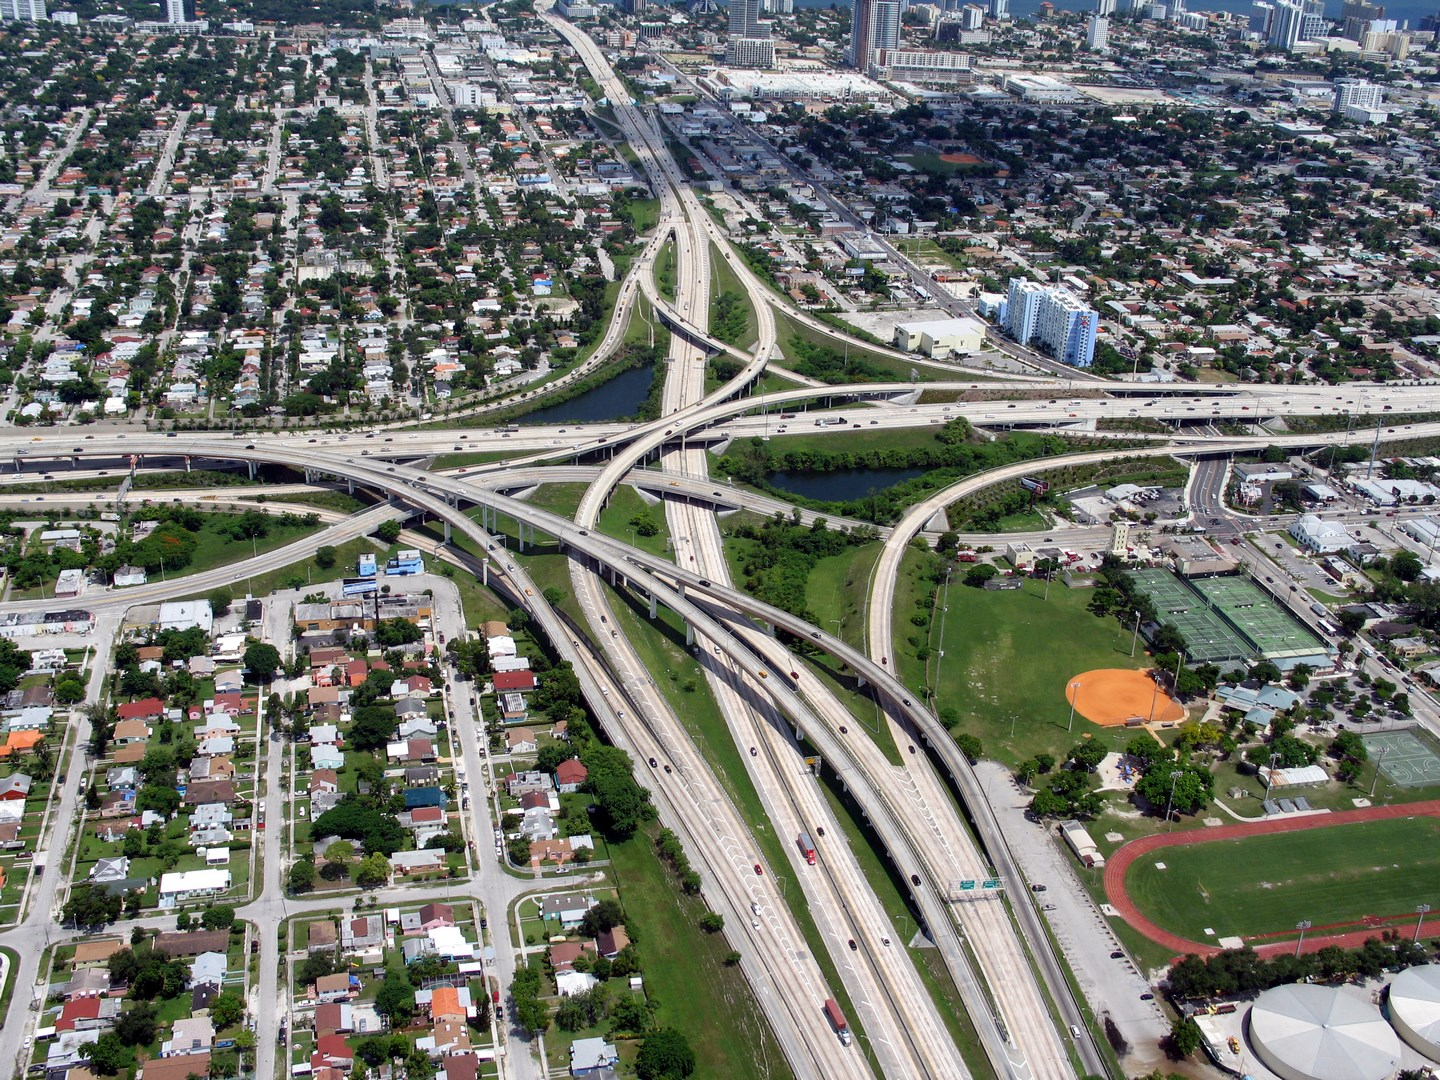 Aerial view of the Miami I-95